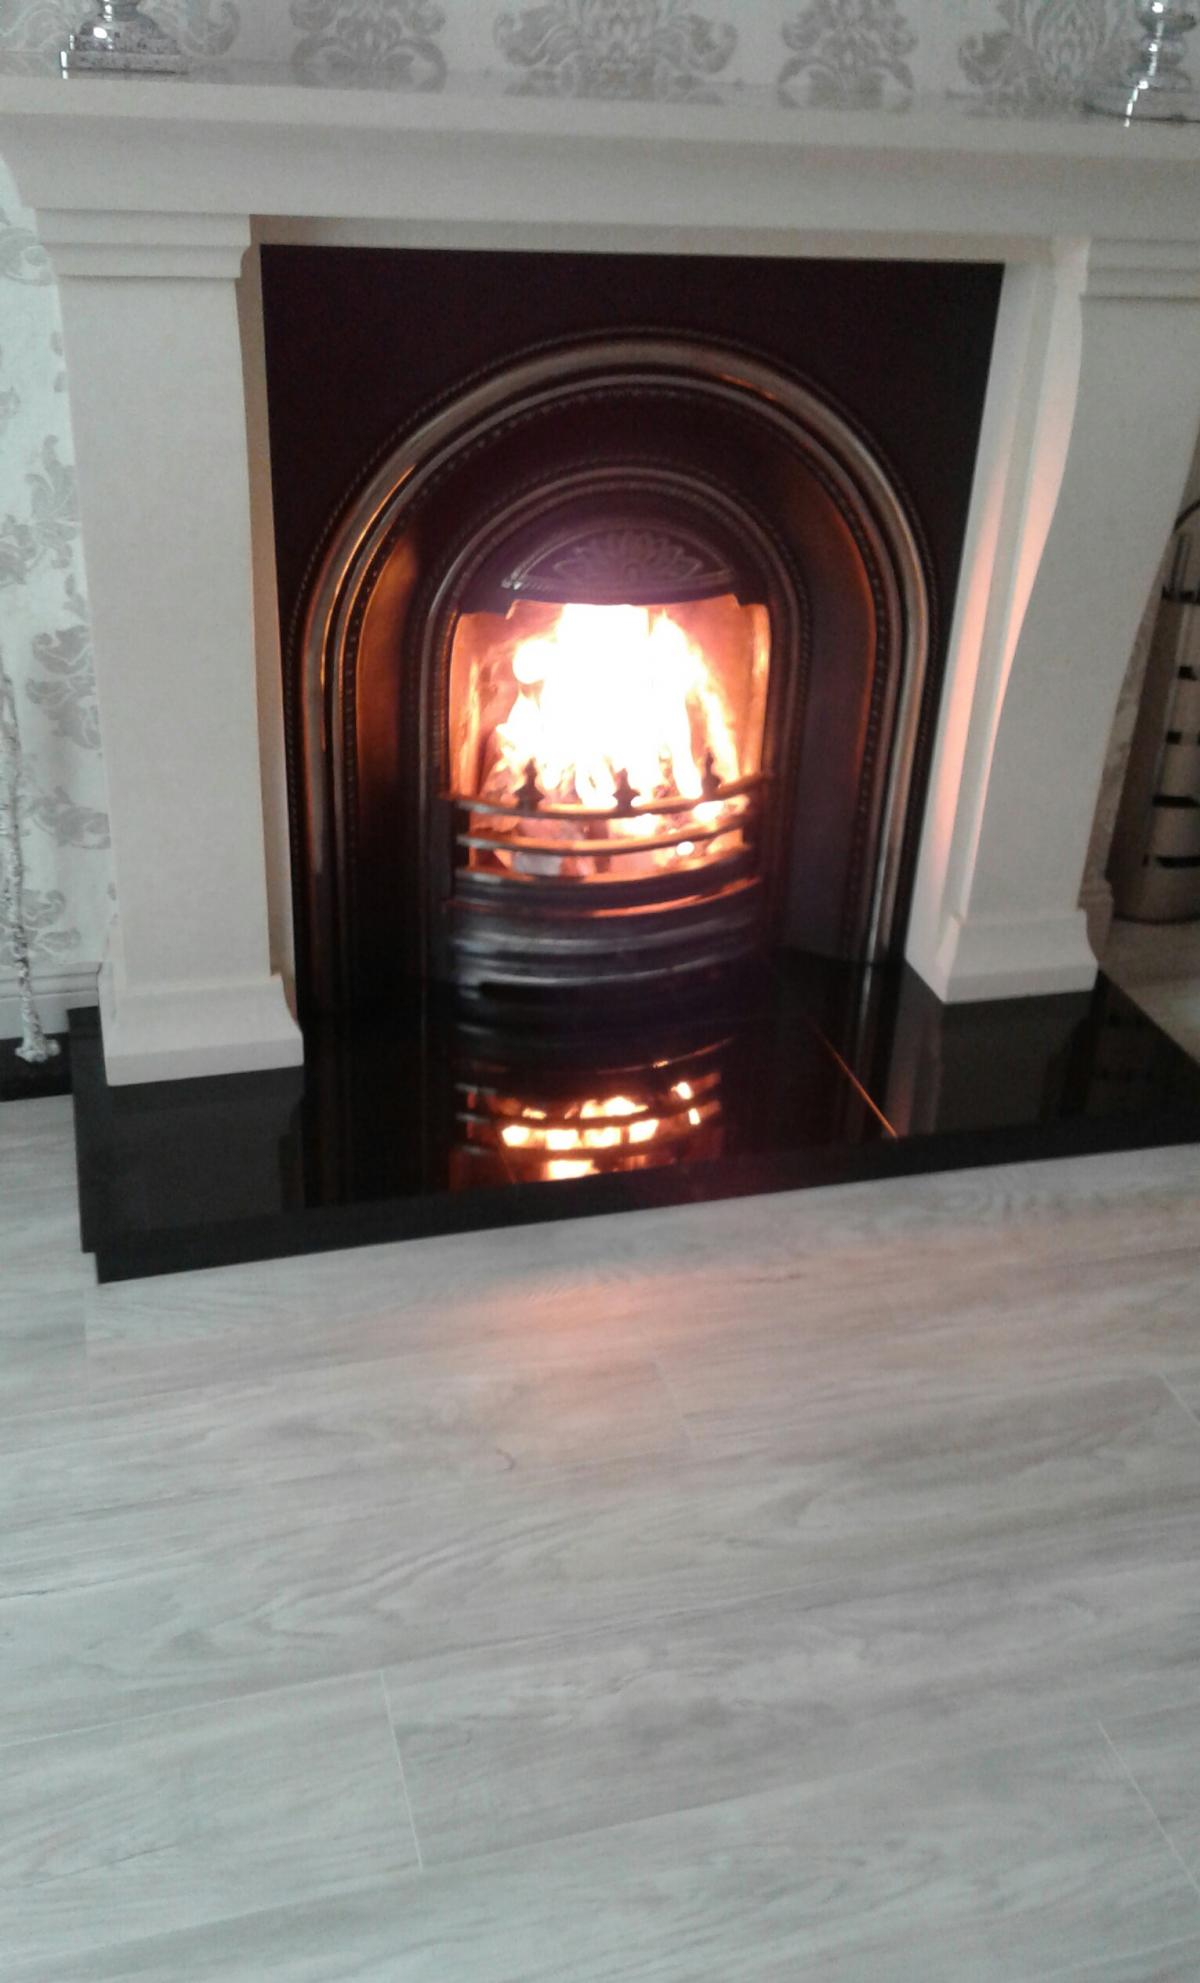 Fireplace soot Cleaner Best Of Chimney with Alot soot • Cleaner Chimneys Donegal town